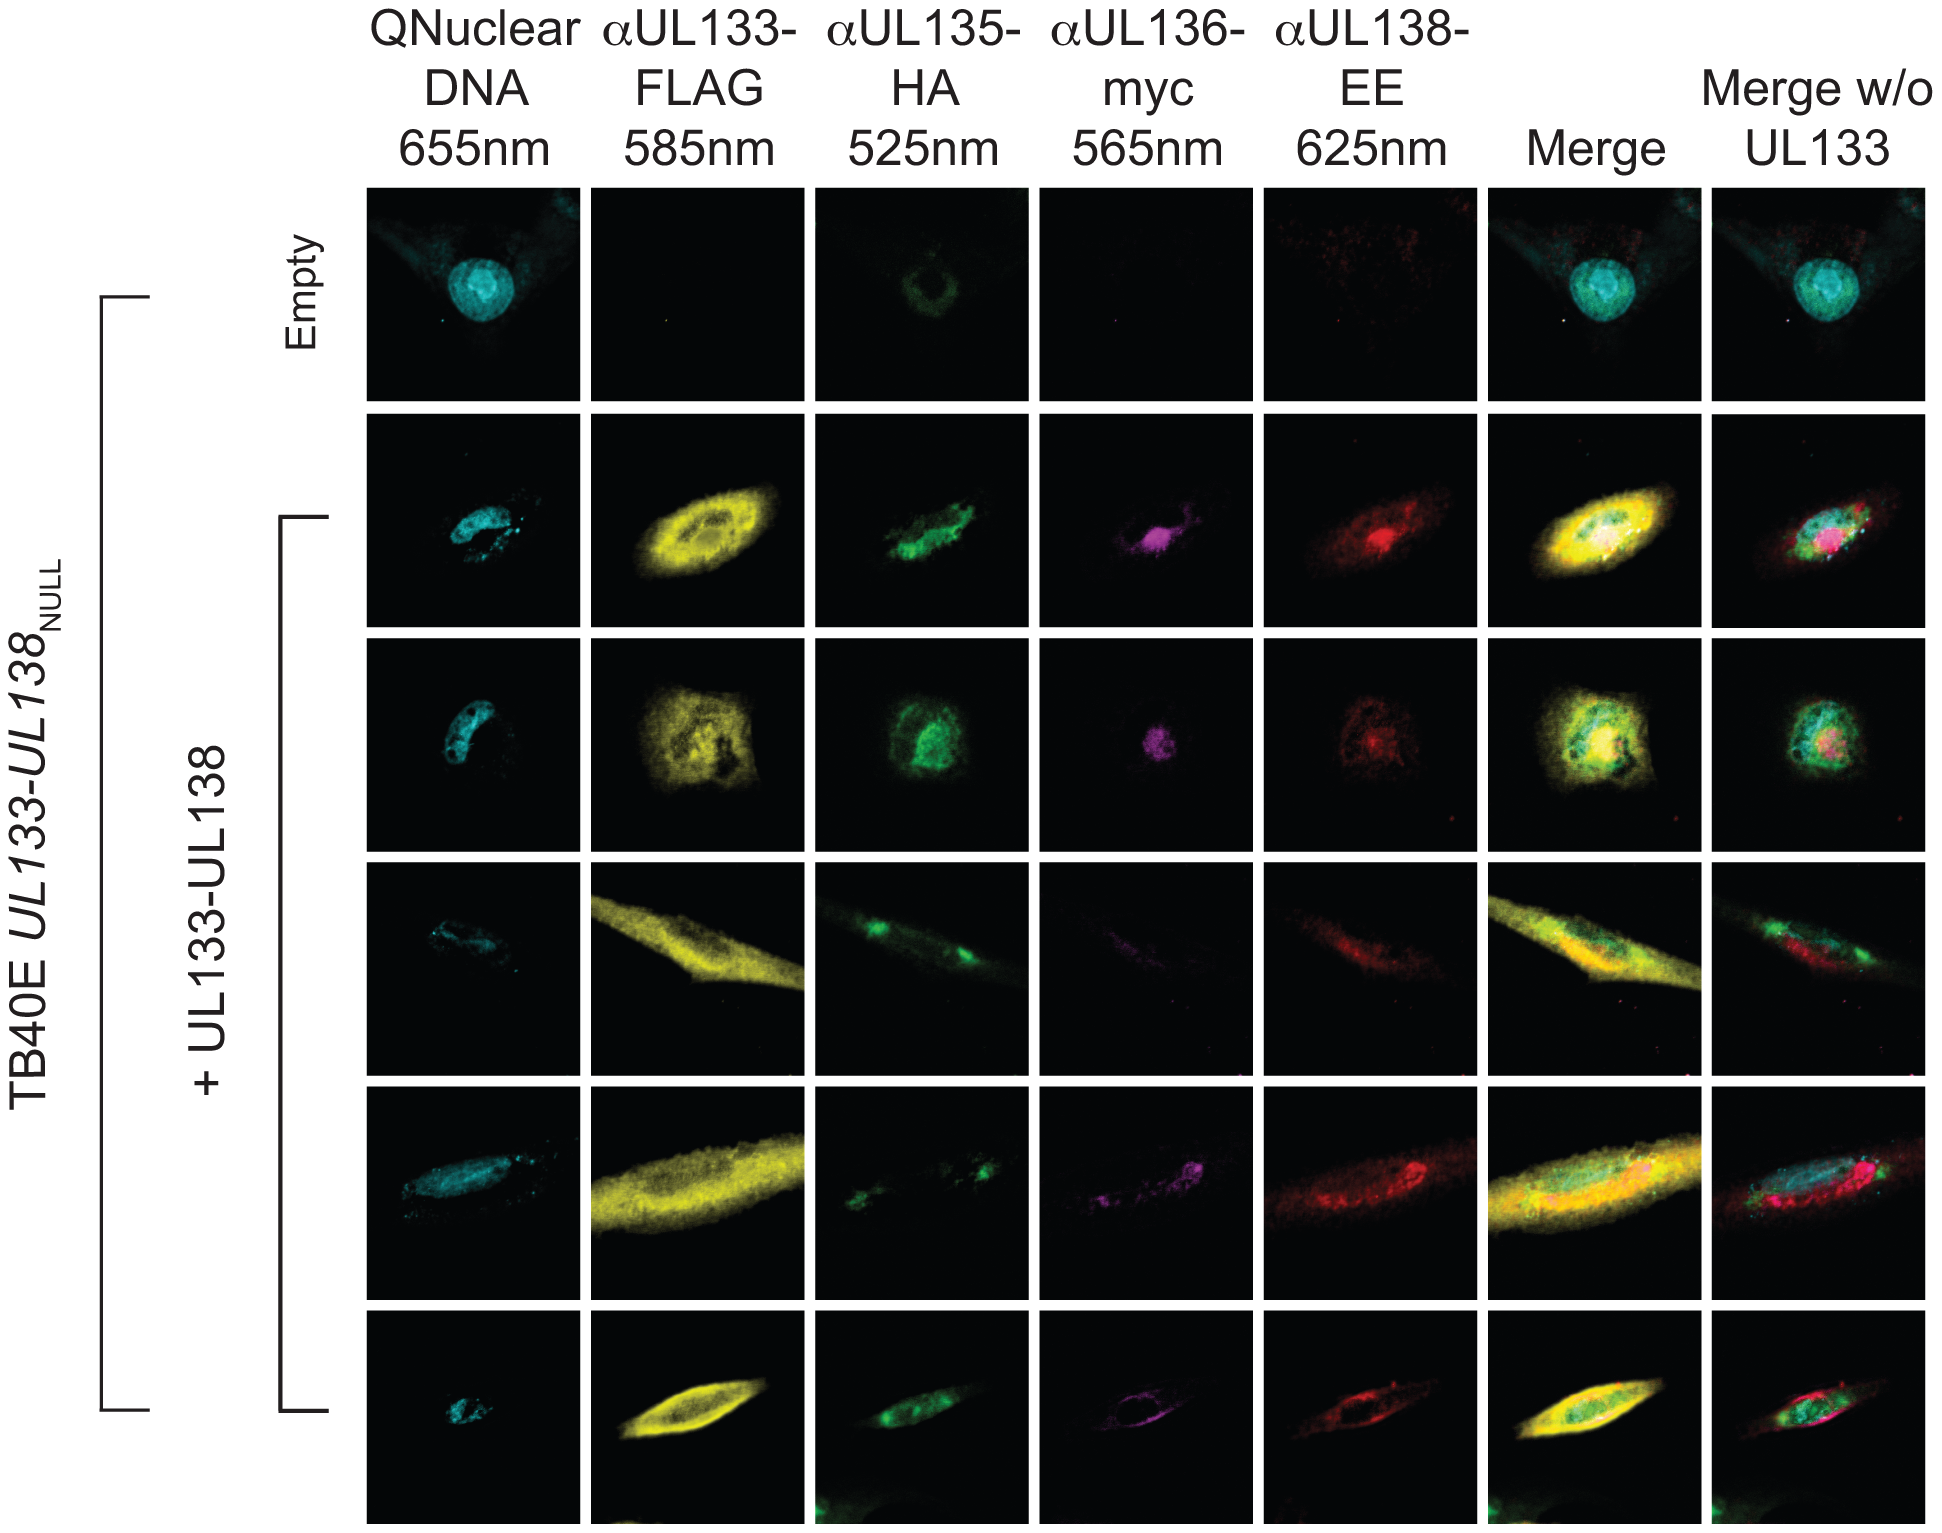 Colocalization of pUL133, pUL135, pUL136 and pUL138 in the Golgi apparatus.